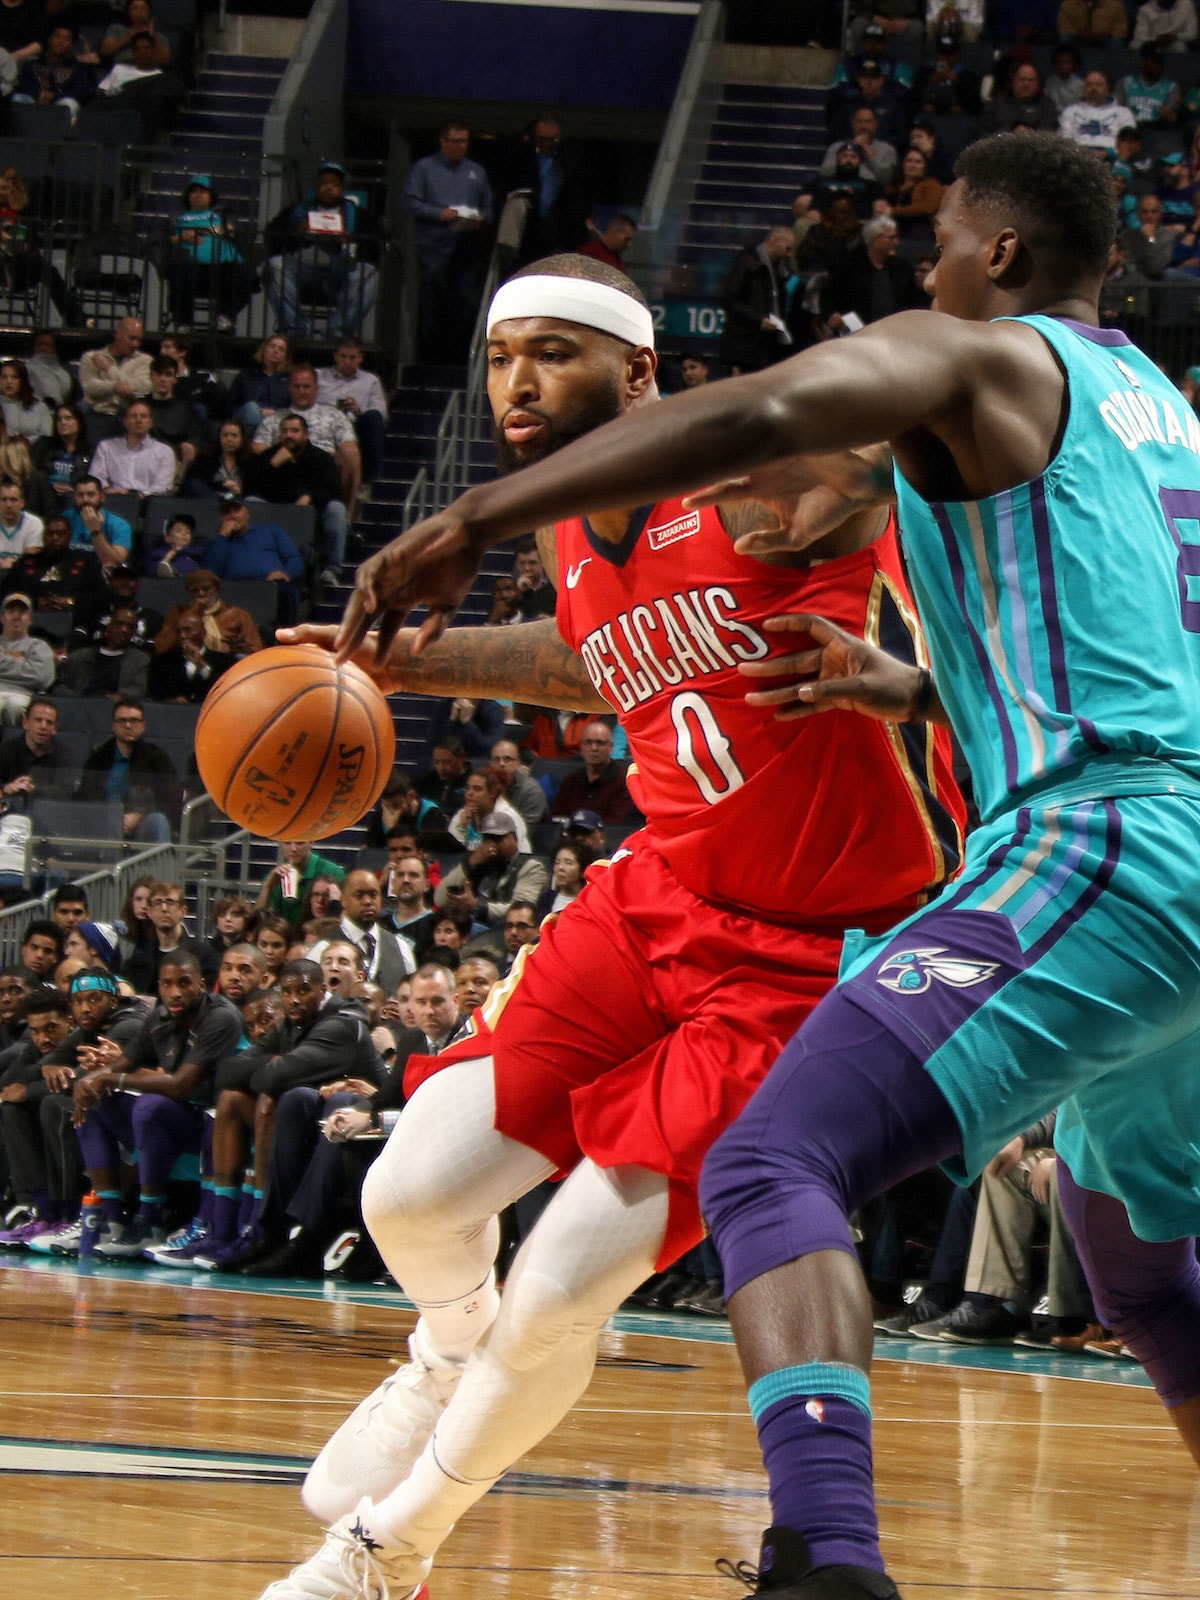 DeMarcus Cousins #0 of the New Orleans Pelicans handles the ball against the Charlotte Hornets on January 24, 2018 at Spectrum Center in Charlotte, North Carolina.